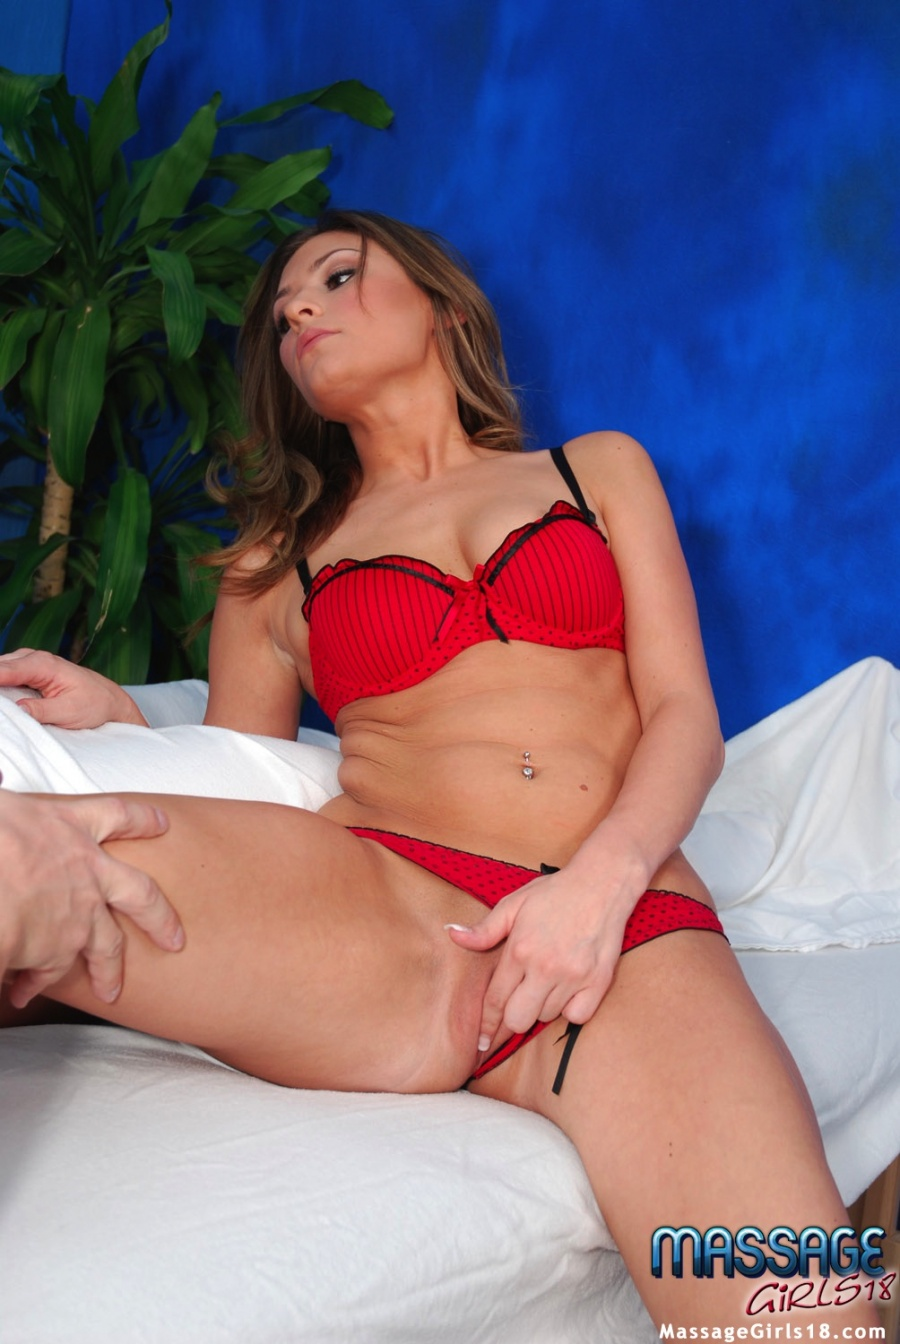 massaging a women Victoria